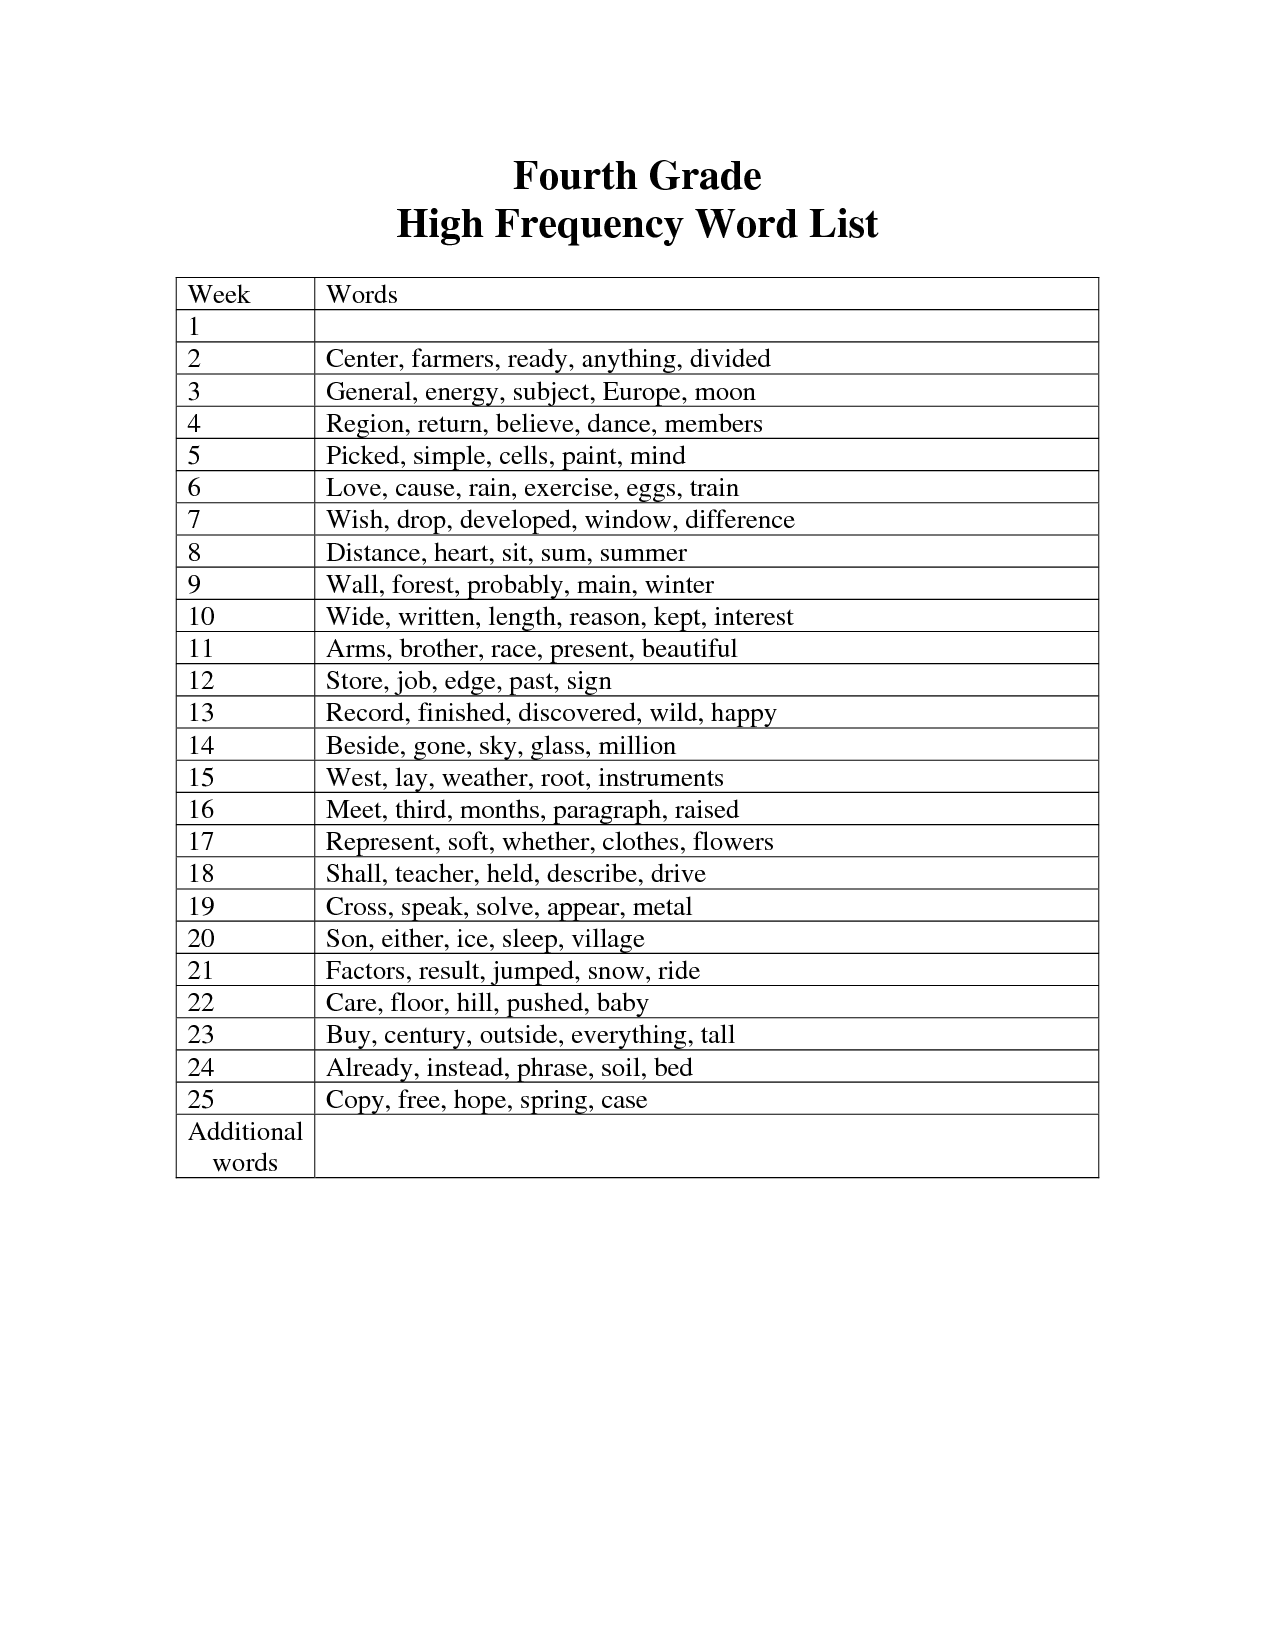 Fourth Grade High Frequency Word List   High frequency word list [ 1650 x 1275 Pixel ]